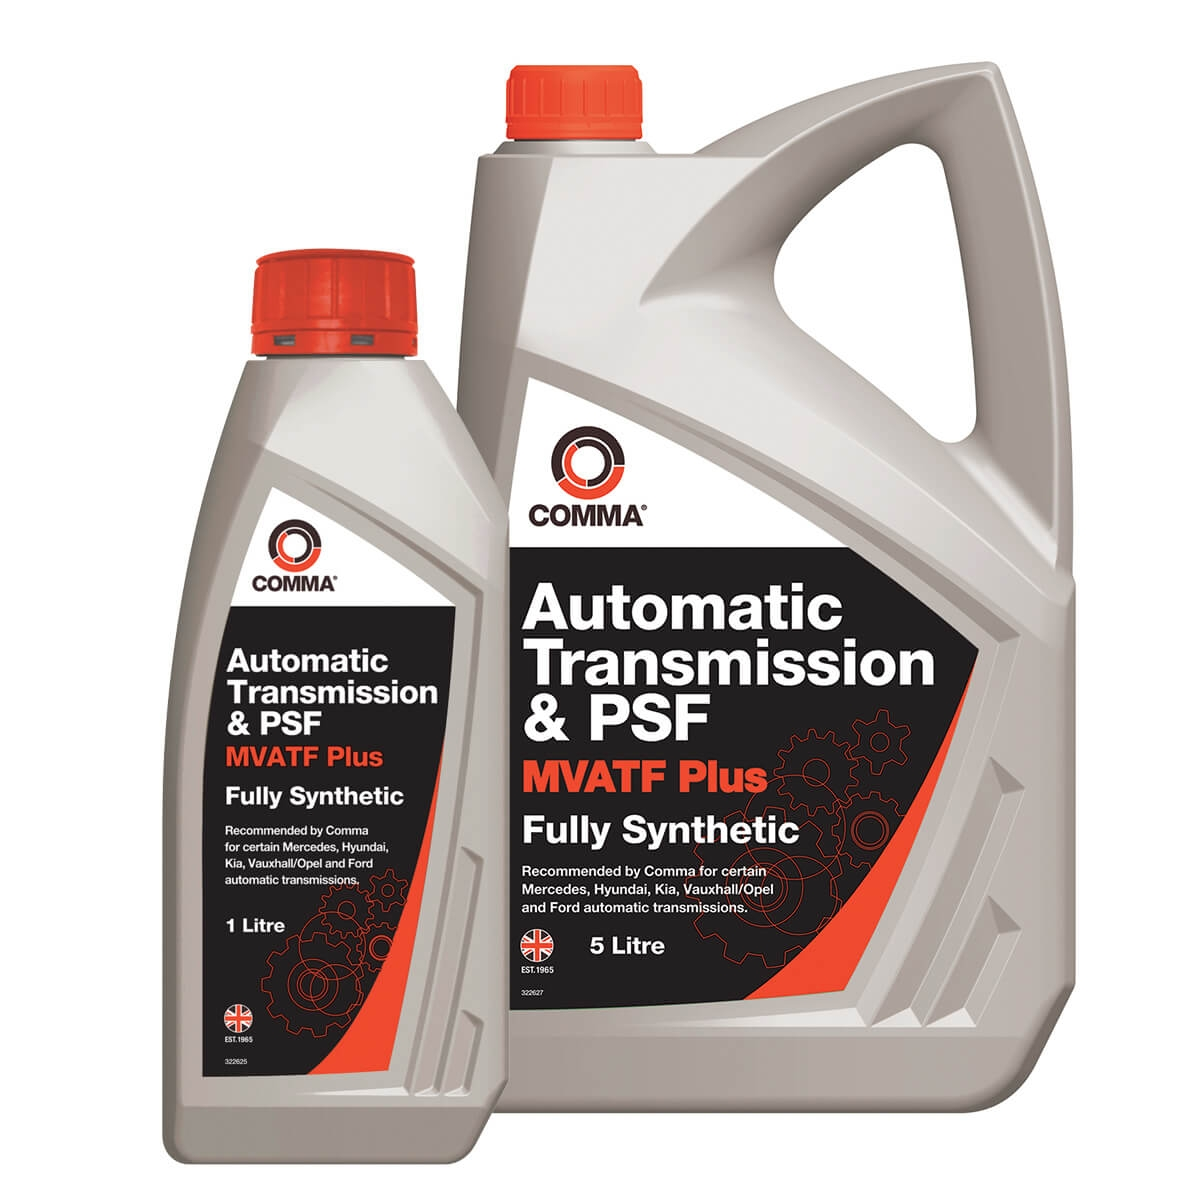 HYUNDAI PONY/EXCEL Automatic Transmission Oil